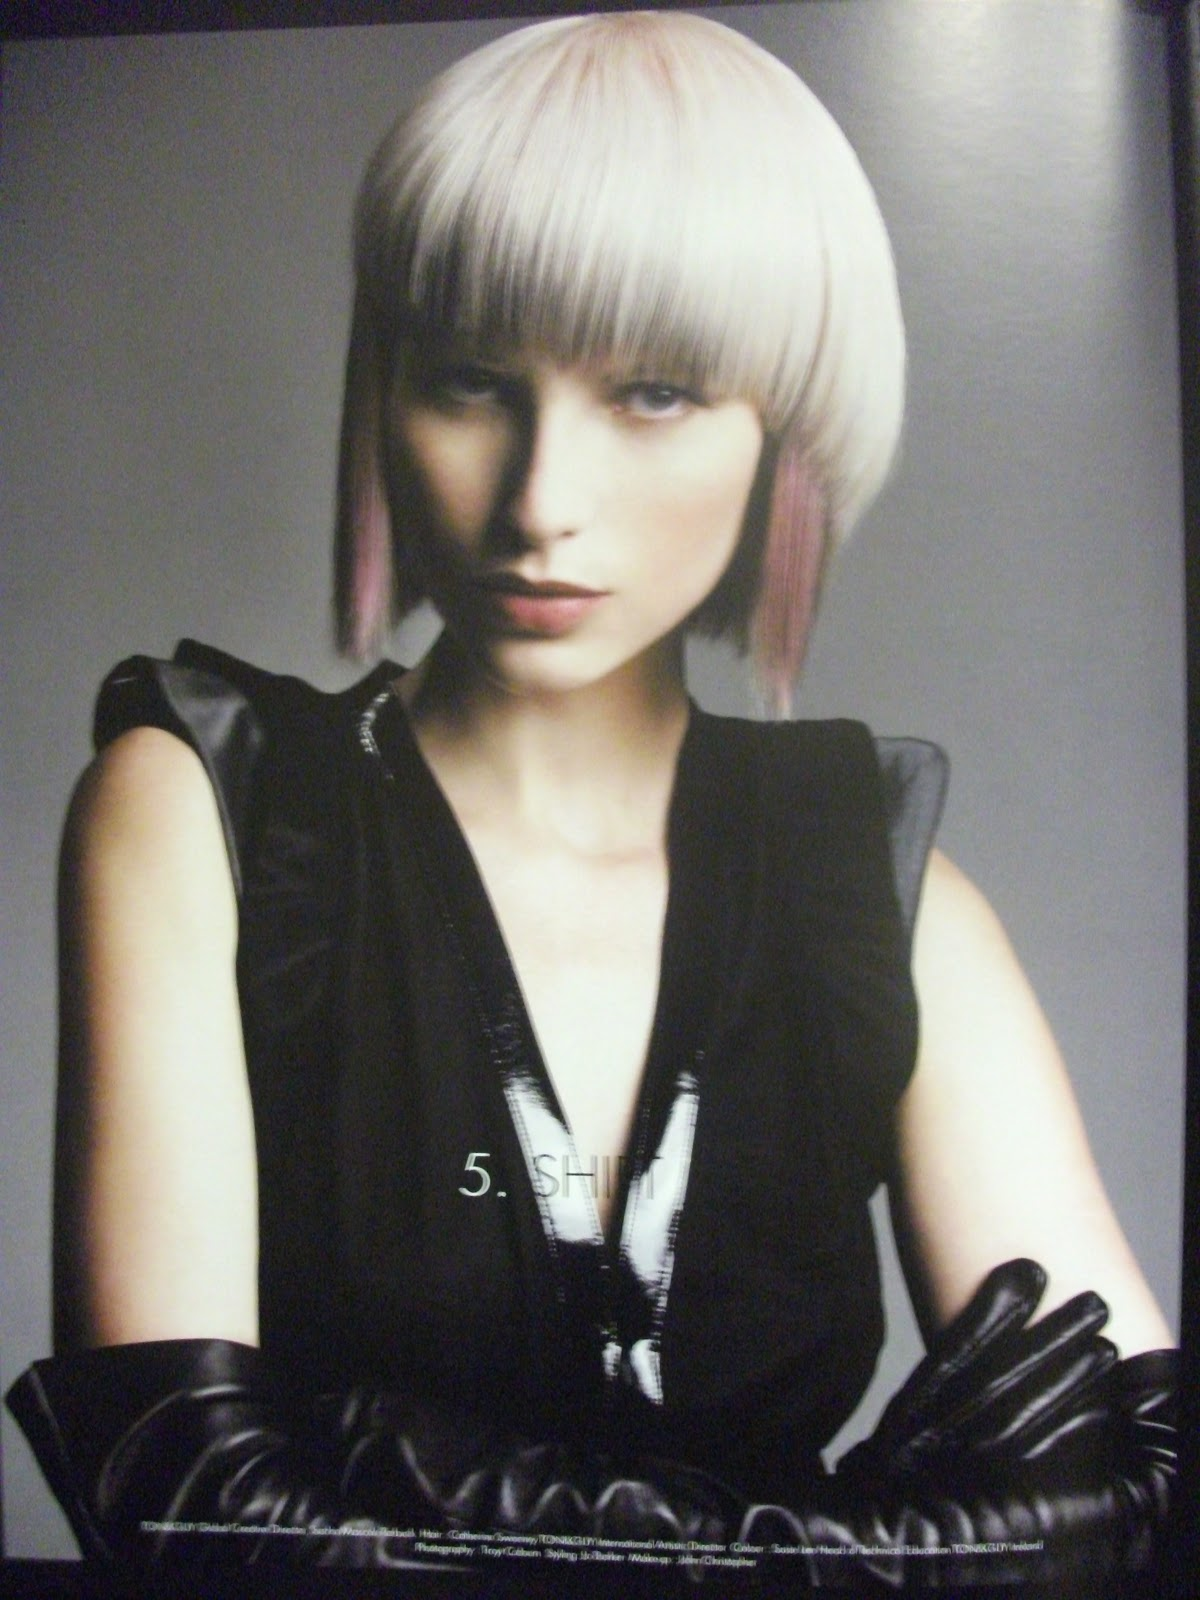 Toni And Guy Through The Years 1996 2011